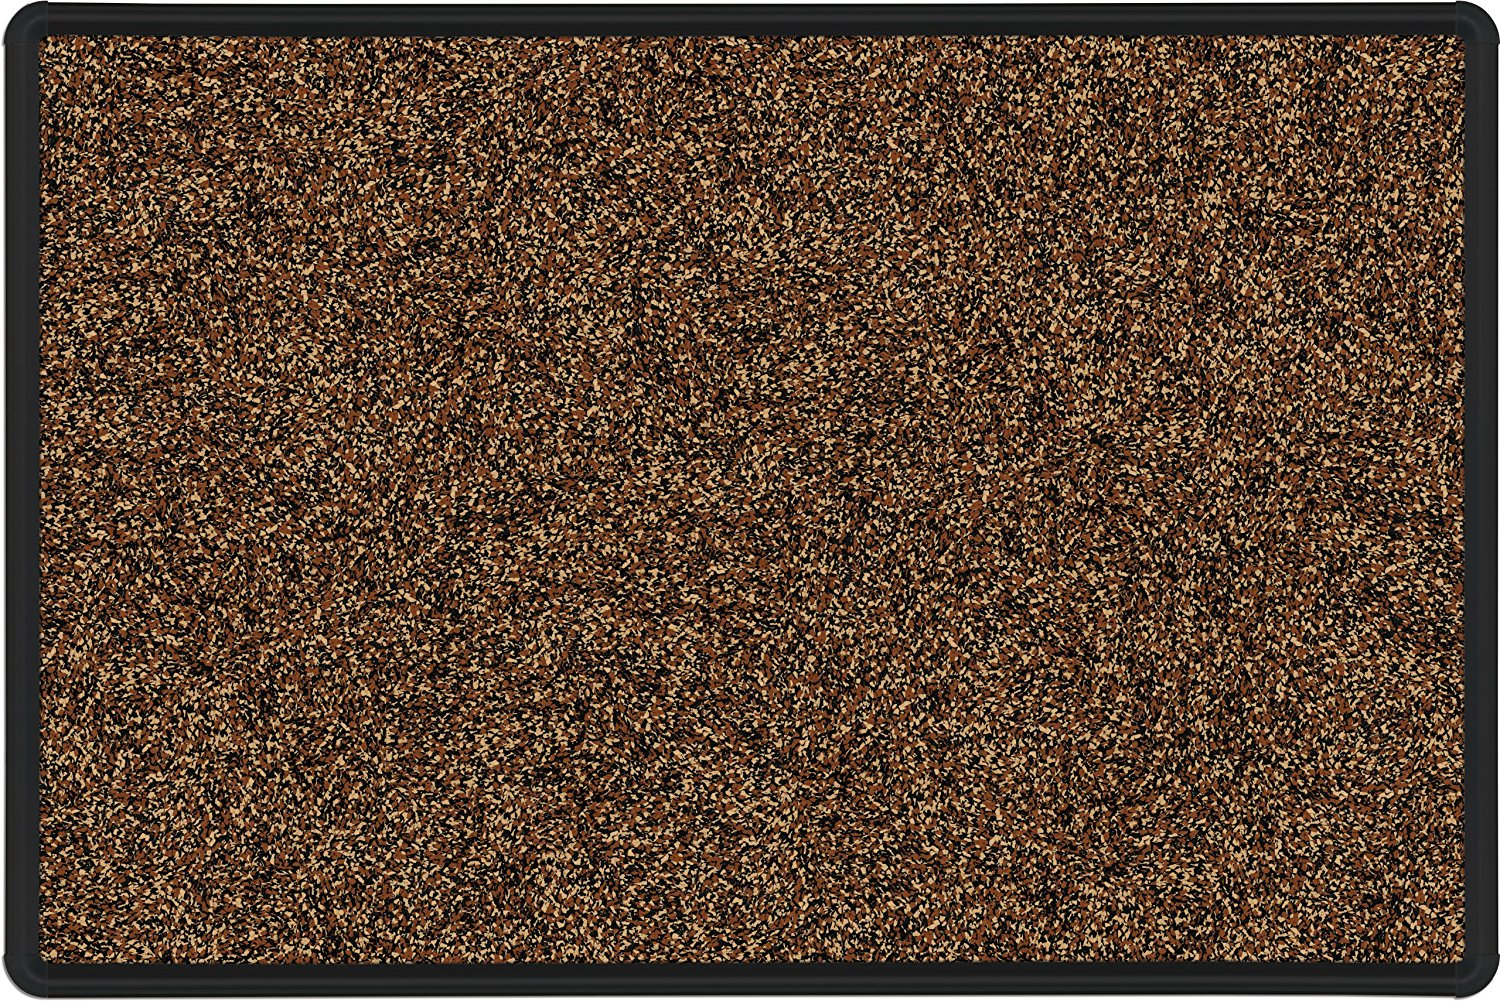 Best-Rite Presidential Trim Rubber-Tak Tackboard, Black Trim, 4 x 8 Feet, Tan (321PH-T1-95)